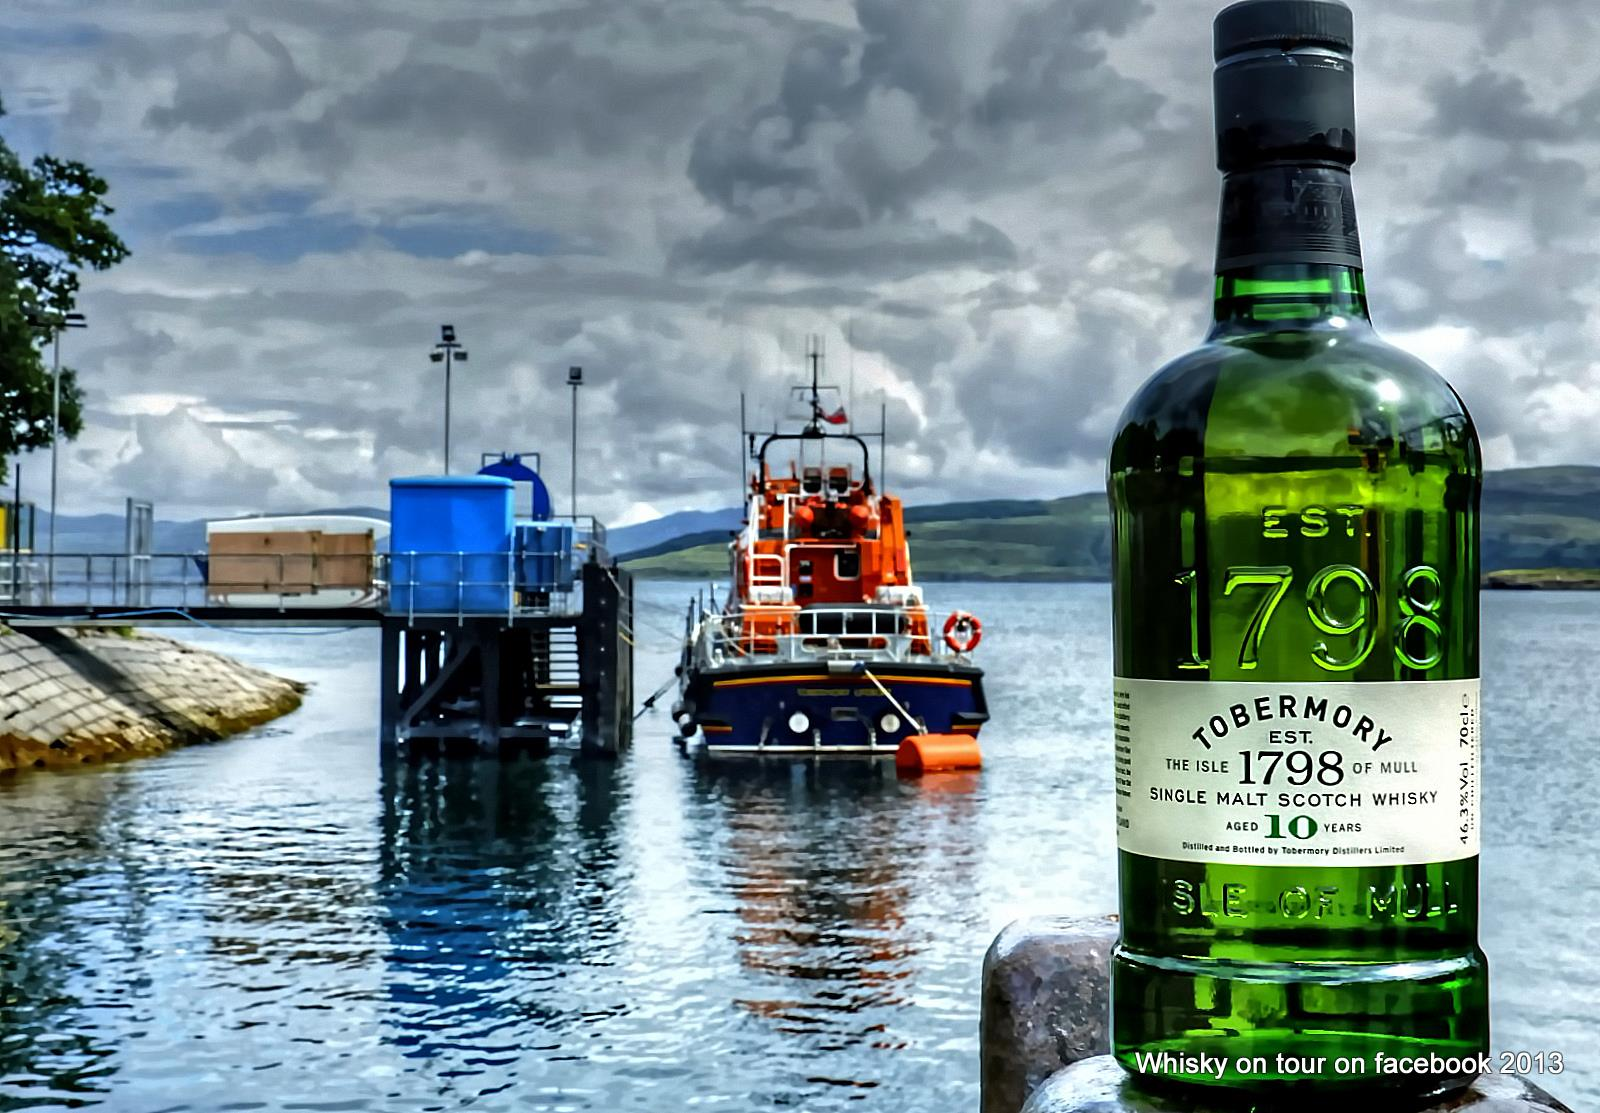 bottle of Tobermory whisky with a wrecked boat on the isle of Mulll